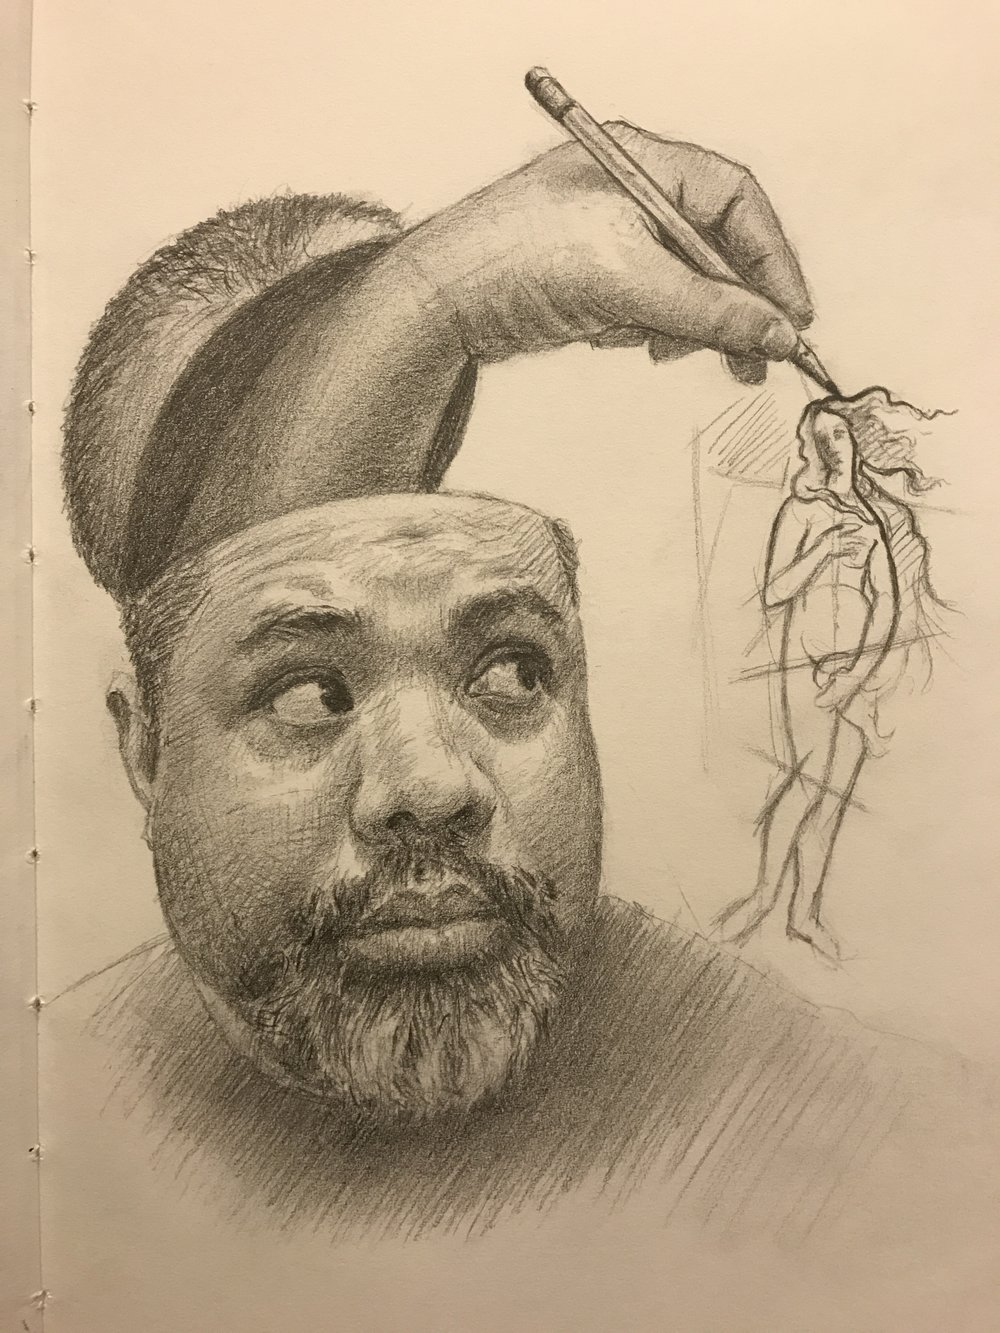 """ Drawing out of my head"", Self portrait, graphite"